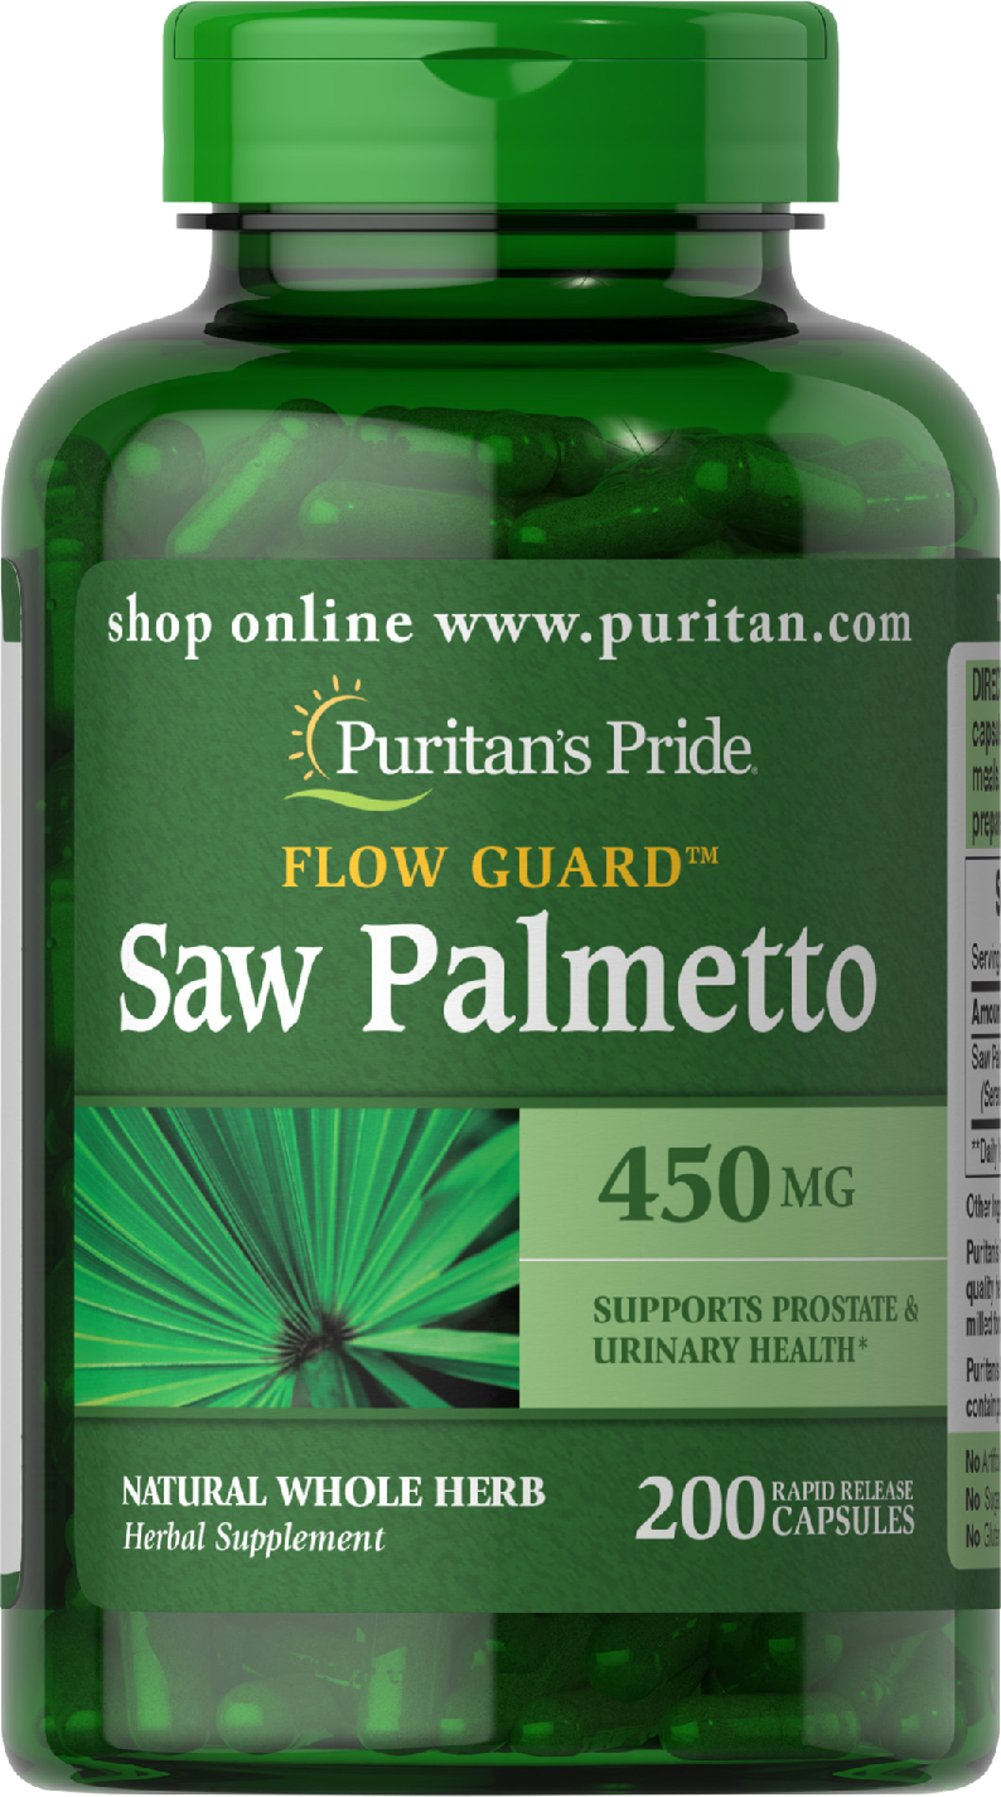 Saw Palmetto 450 mg <p></p>Saw Palmetto is an extract derived from the berry of the Saw Palmetto tree and is the leading herb for men's health.** Our high-quality softgels deliver 450 mg of Saw Palmetto, an herb that has been traditionally used to support prostate and urinary health in men, especially in later years.** Our extract provides a natural whole herb in a convenient to take softgel capsule. <br /><p></p> 200 Capsules 450 mg $11.99